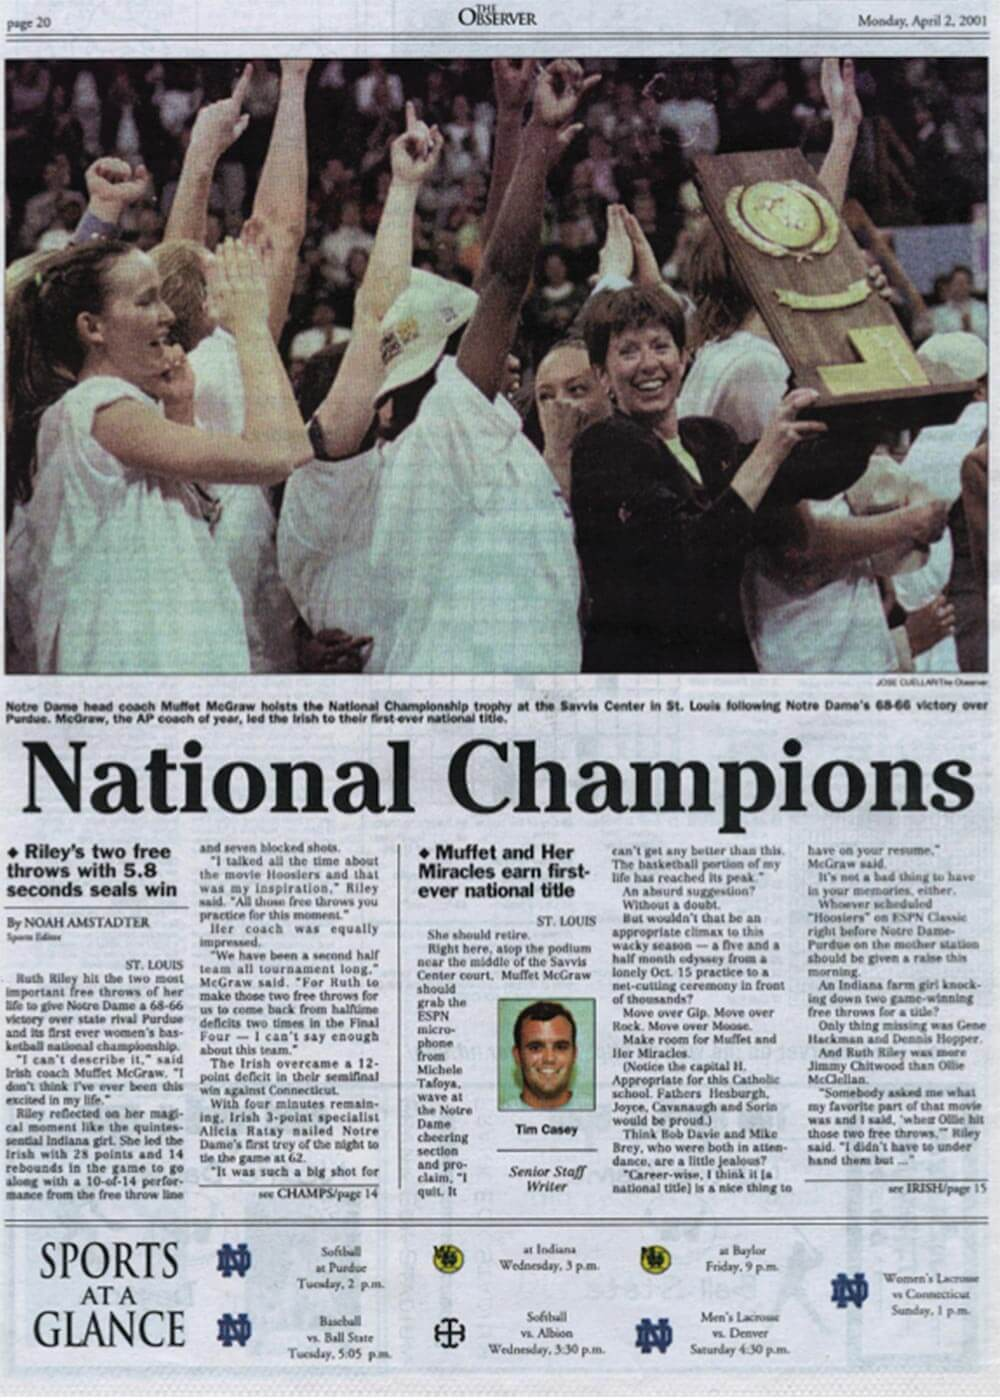 Women's Basketball wins championship - 2001